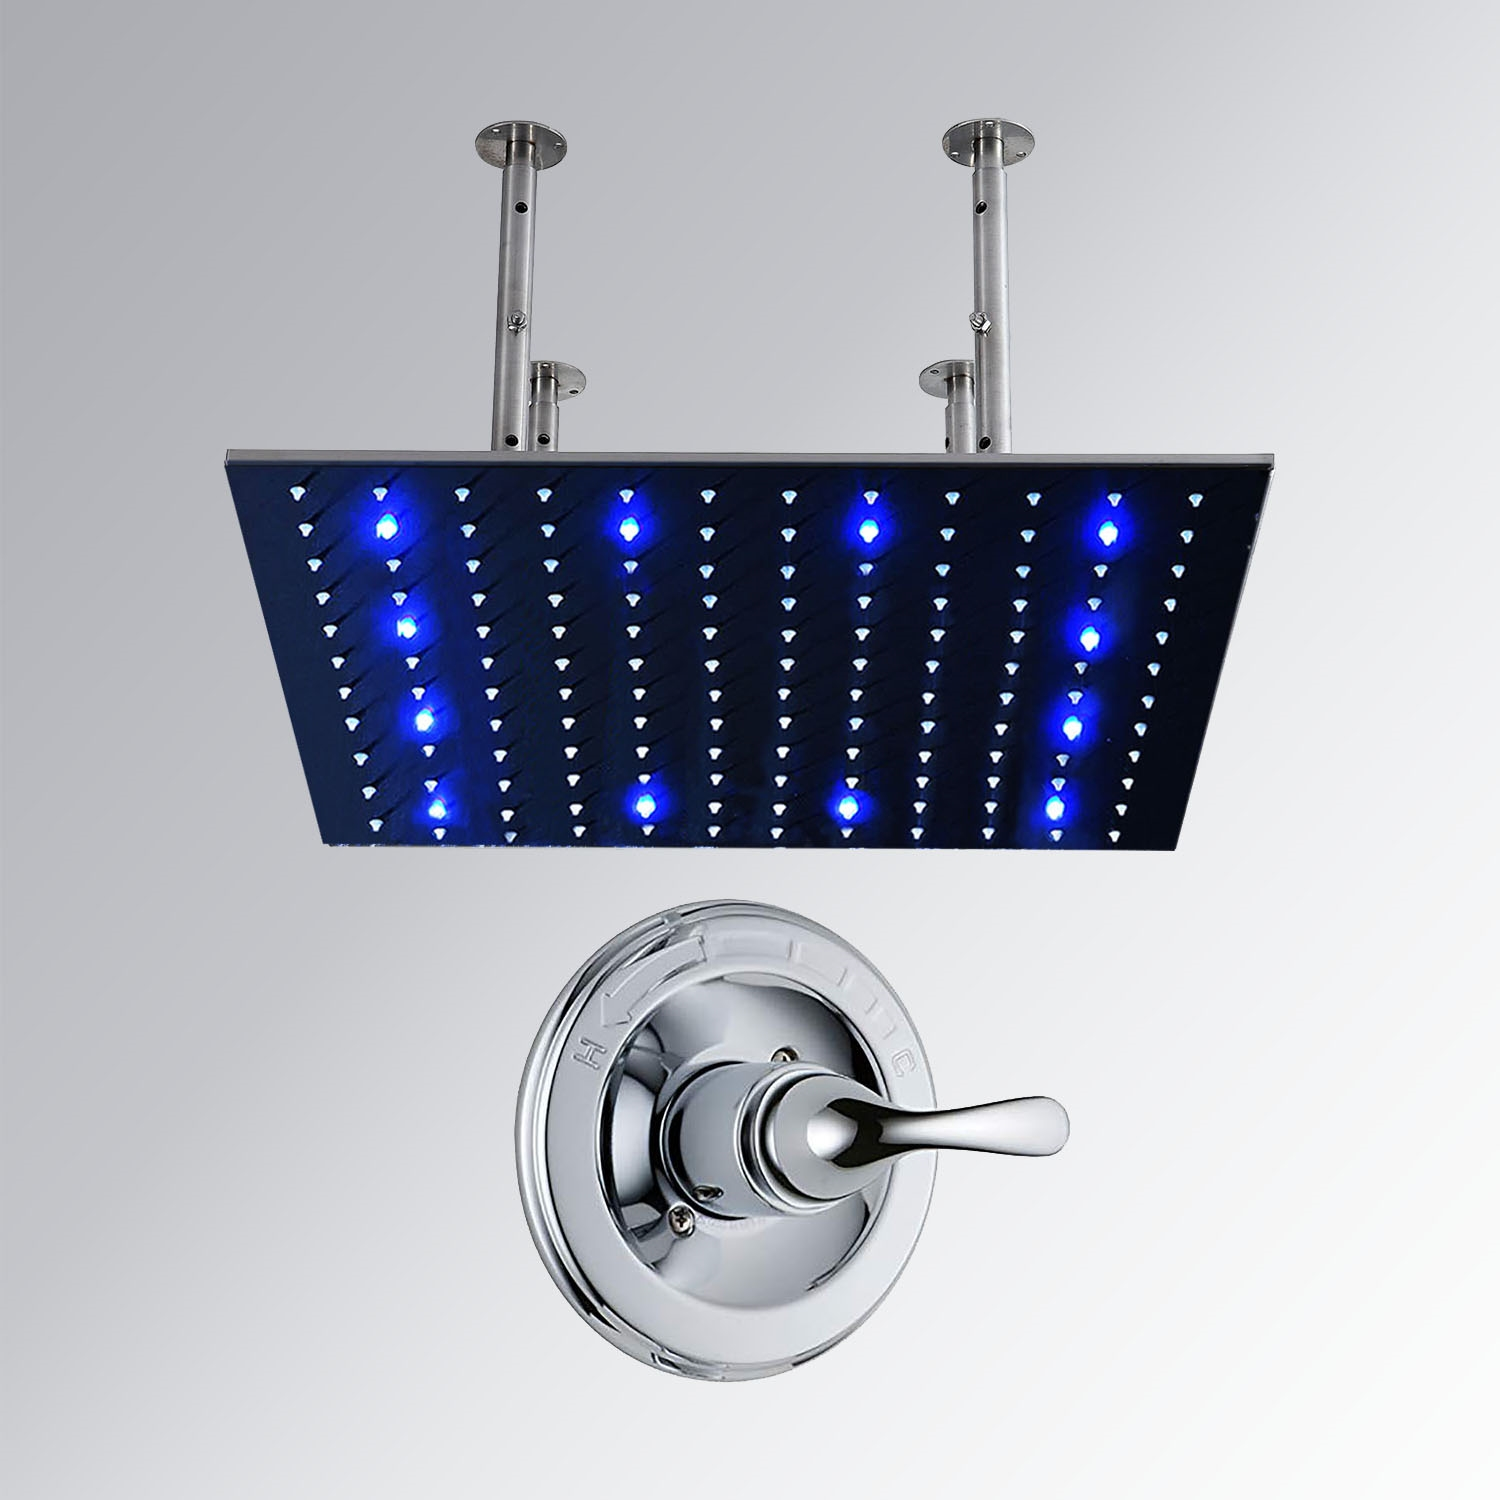 40 Stainless Steel Square Color Changing LED Rain Shower